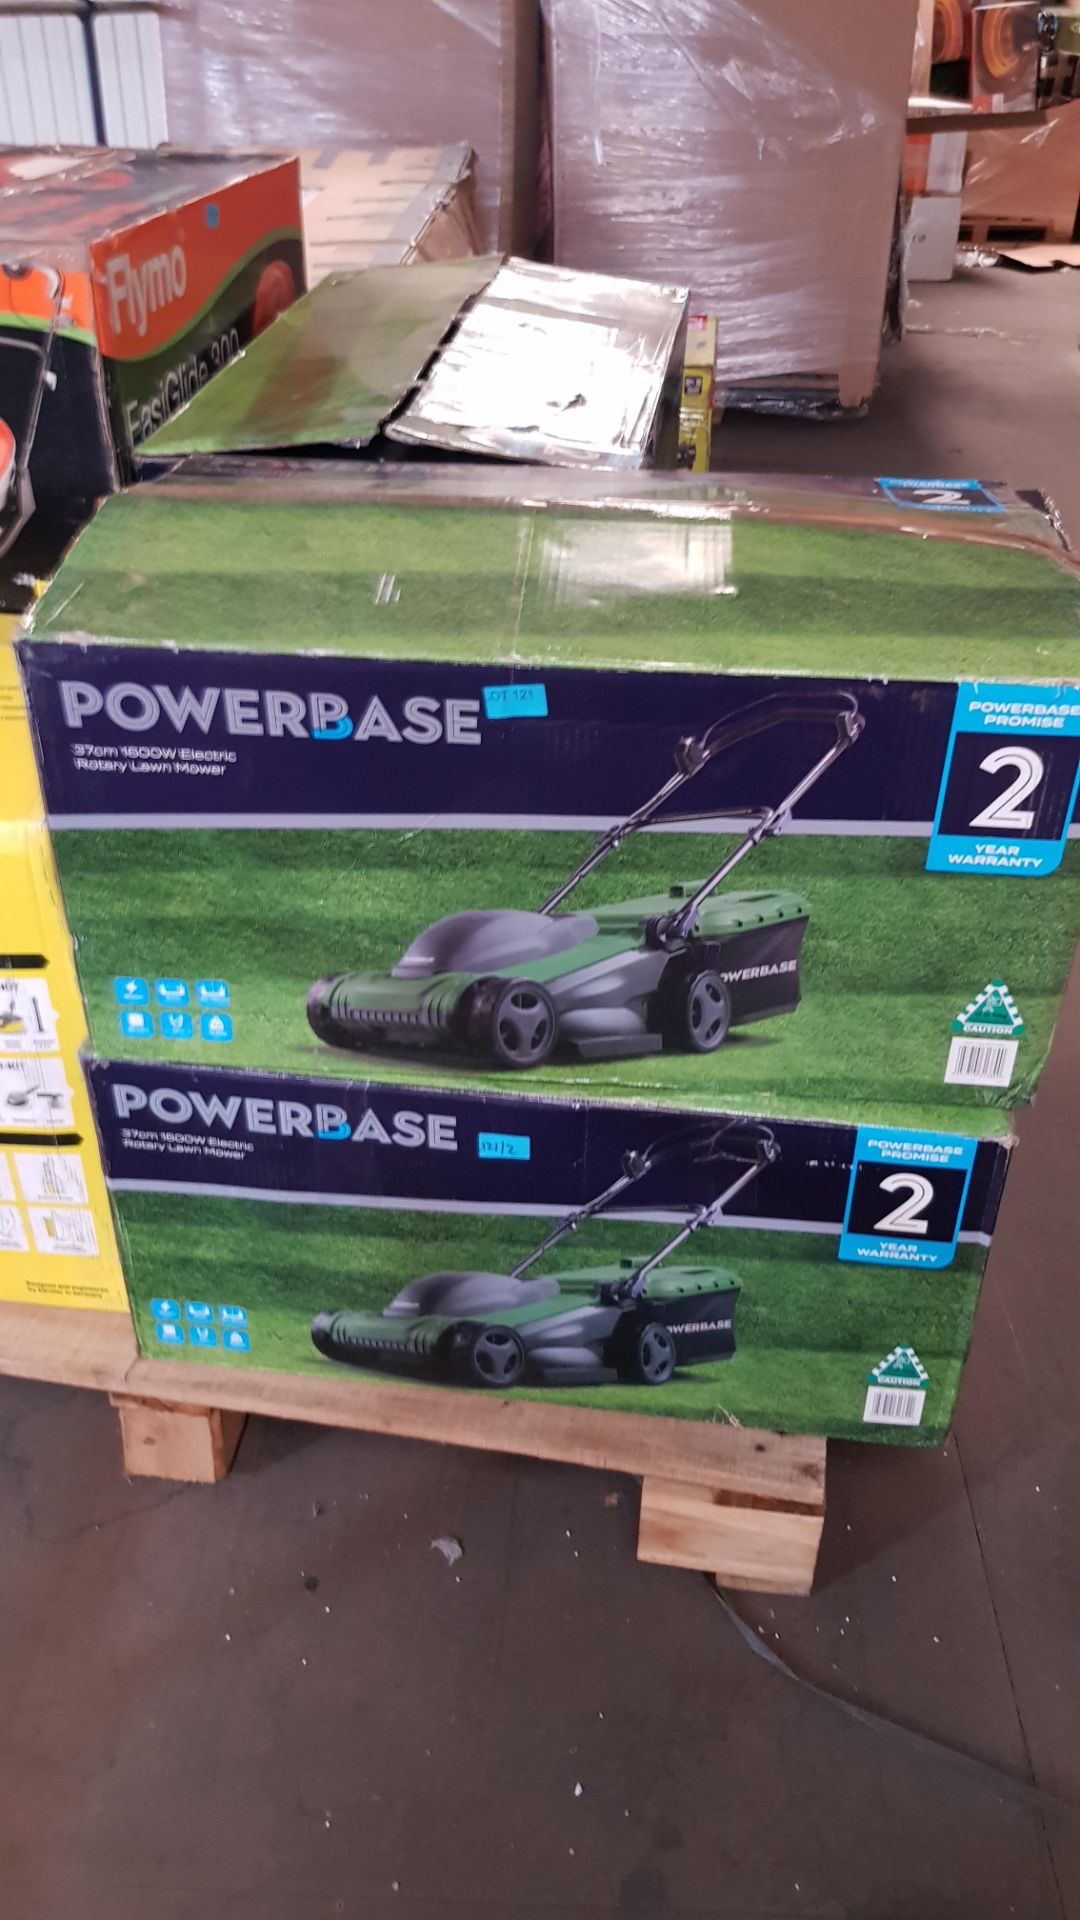 (P2) 2x Powerbase 37cm 1600W Electric Rotary Lawn Mower. RRP £99.00. - Image 3 of 3